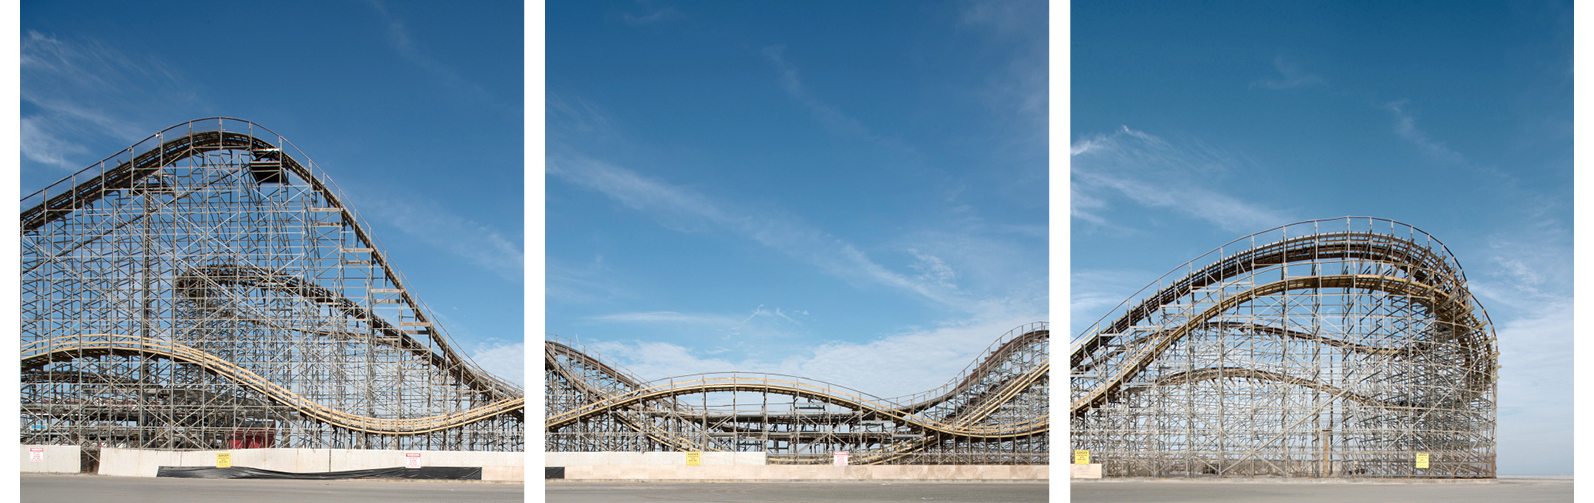 Wildwood, New Jersey